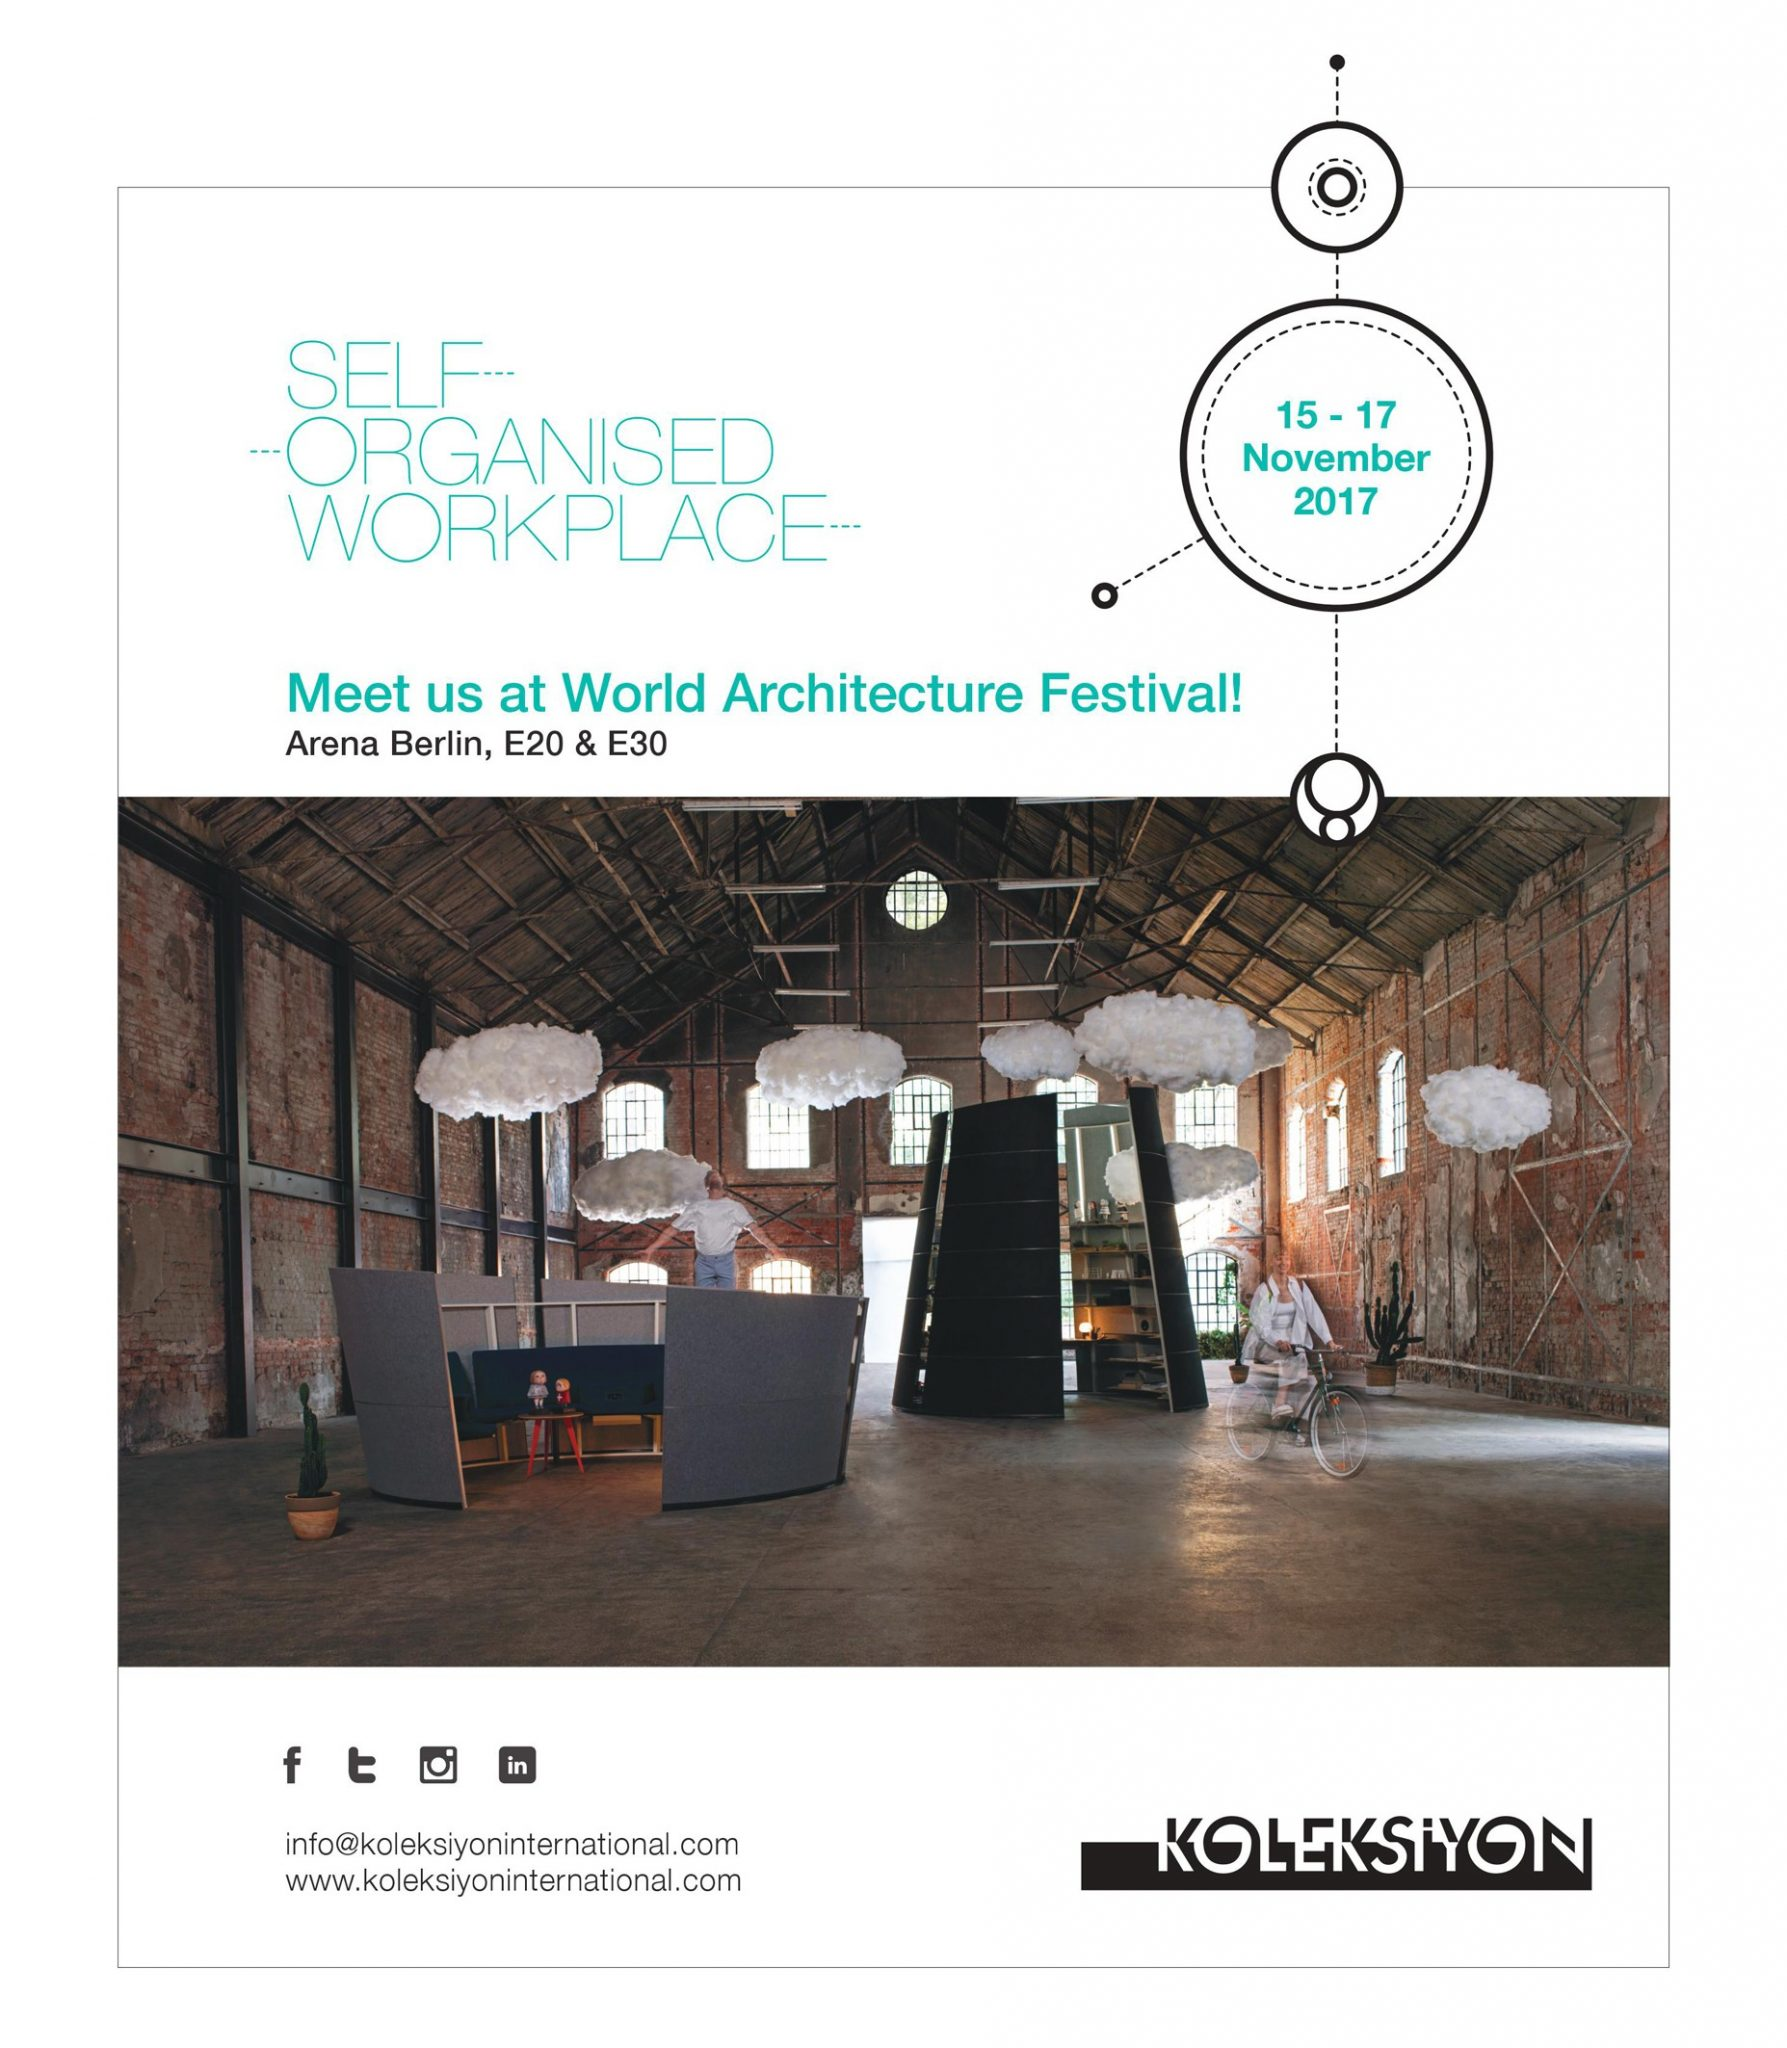 World Architecture Festival In Berlin To See More News About Events Subscribe Our